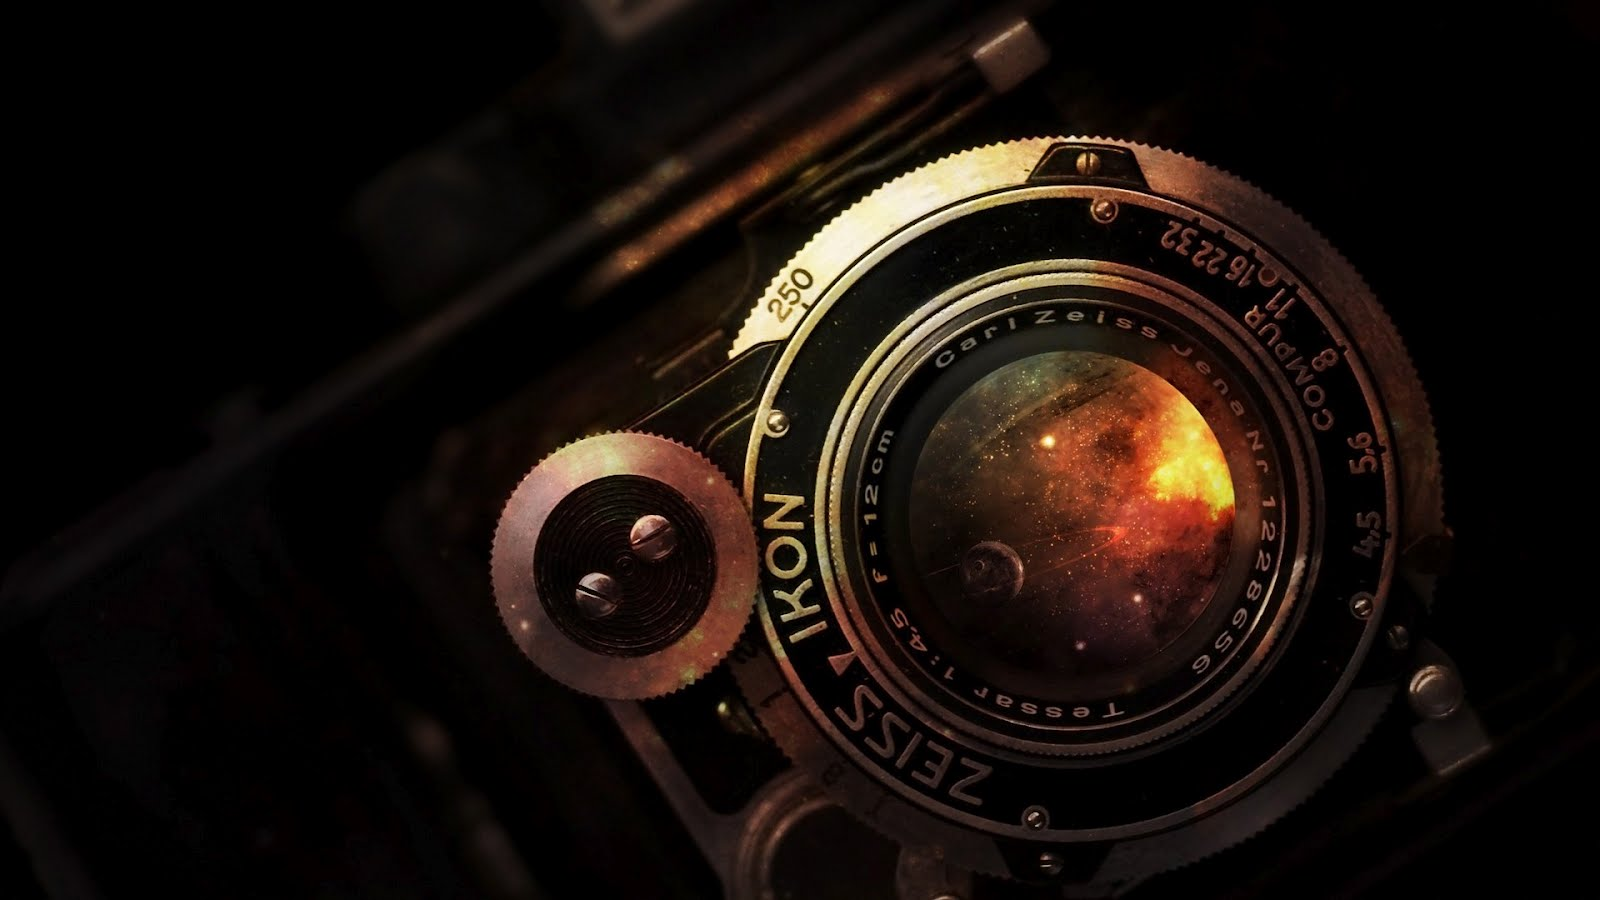 Vintage Camera Zeiss Ikon Lens, HD Wallpaper